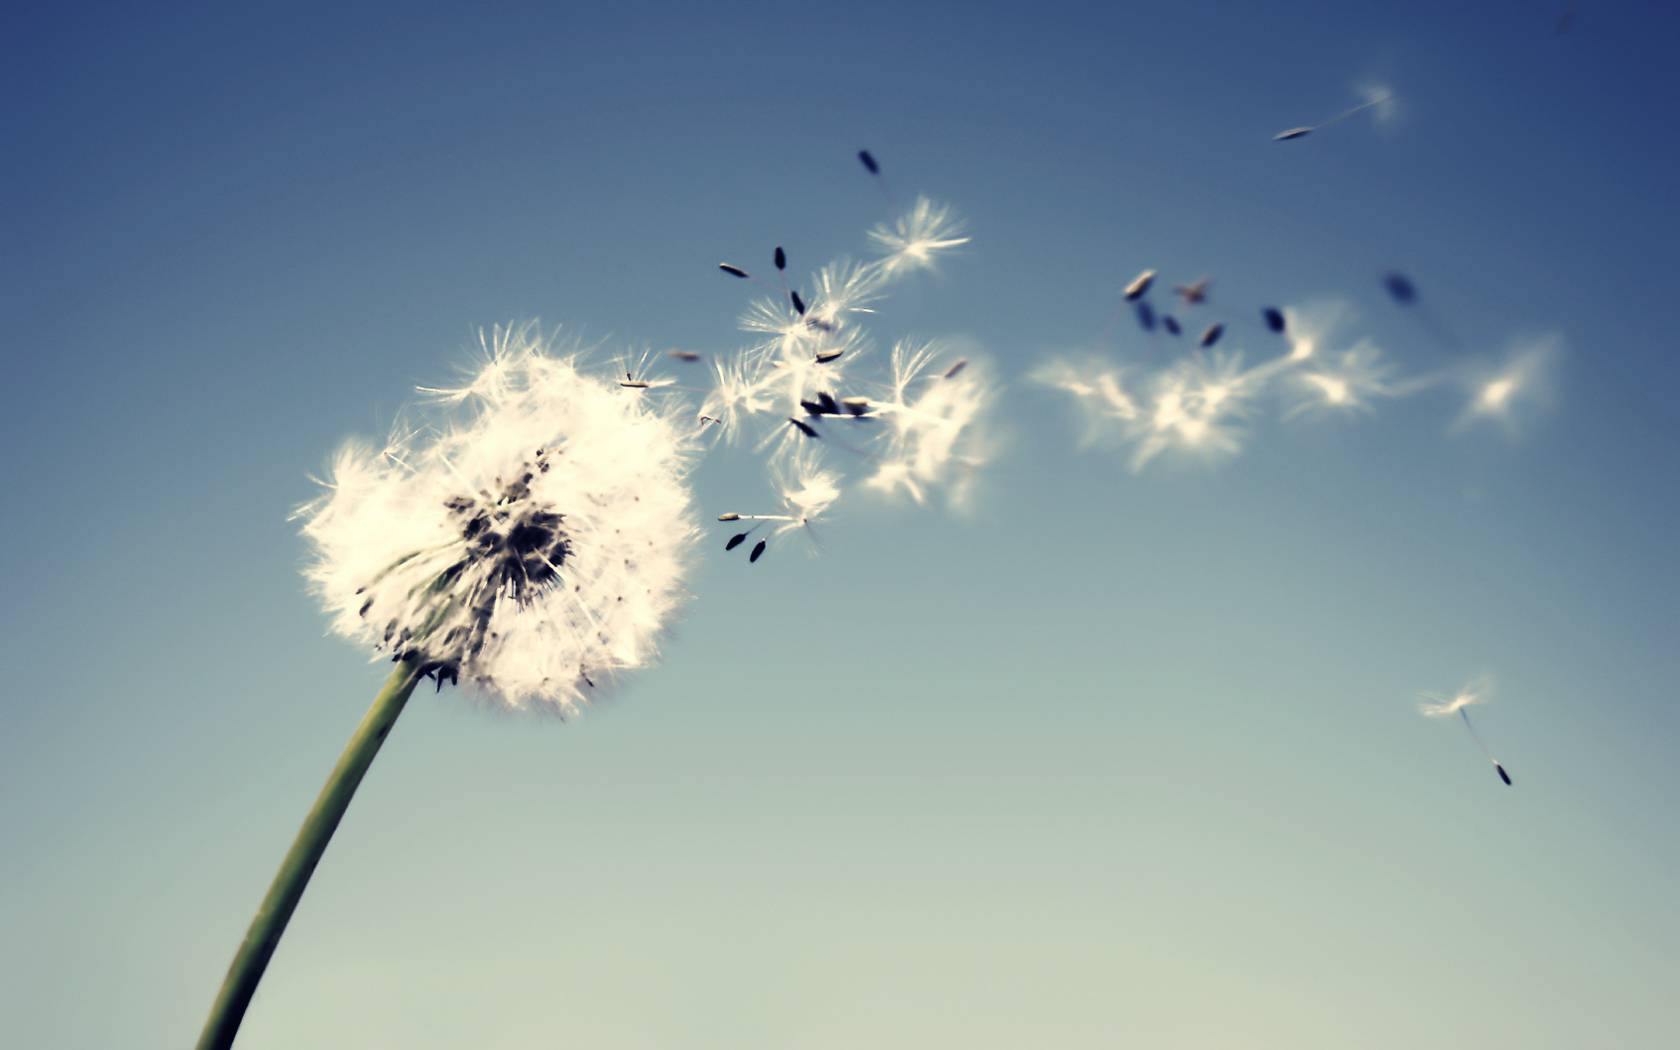 Dandelion Flowers Free HD Background Wallpapers | HD Wallapers for